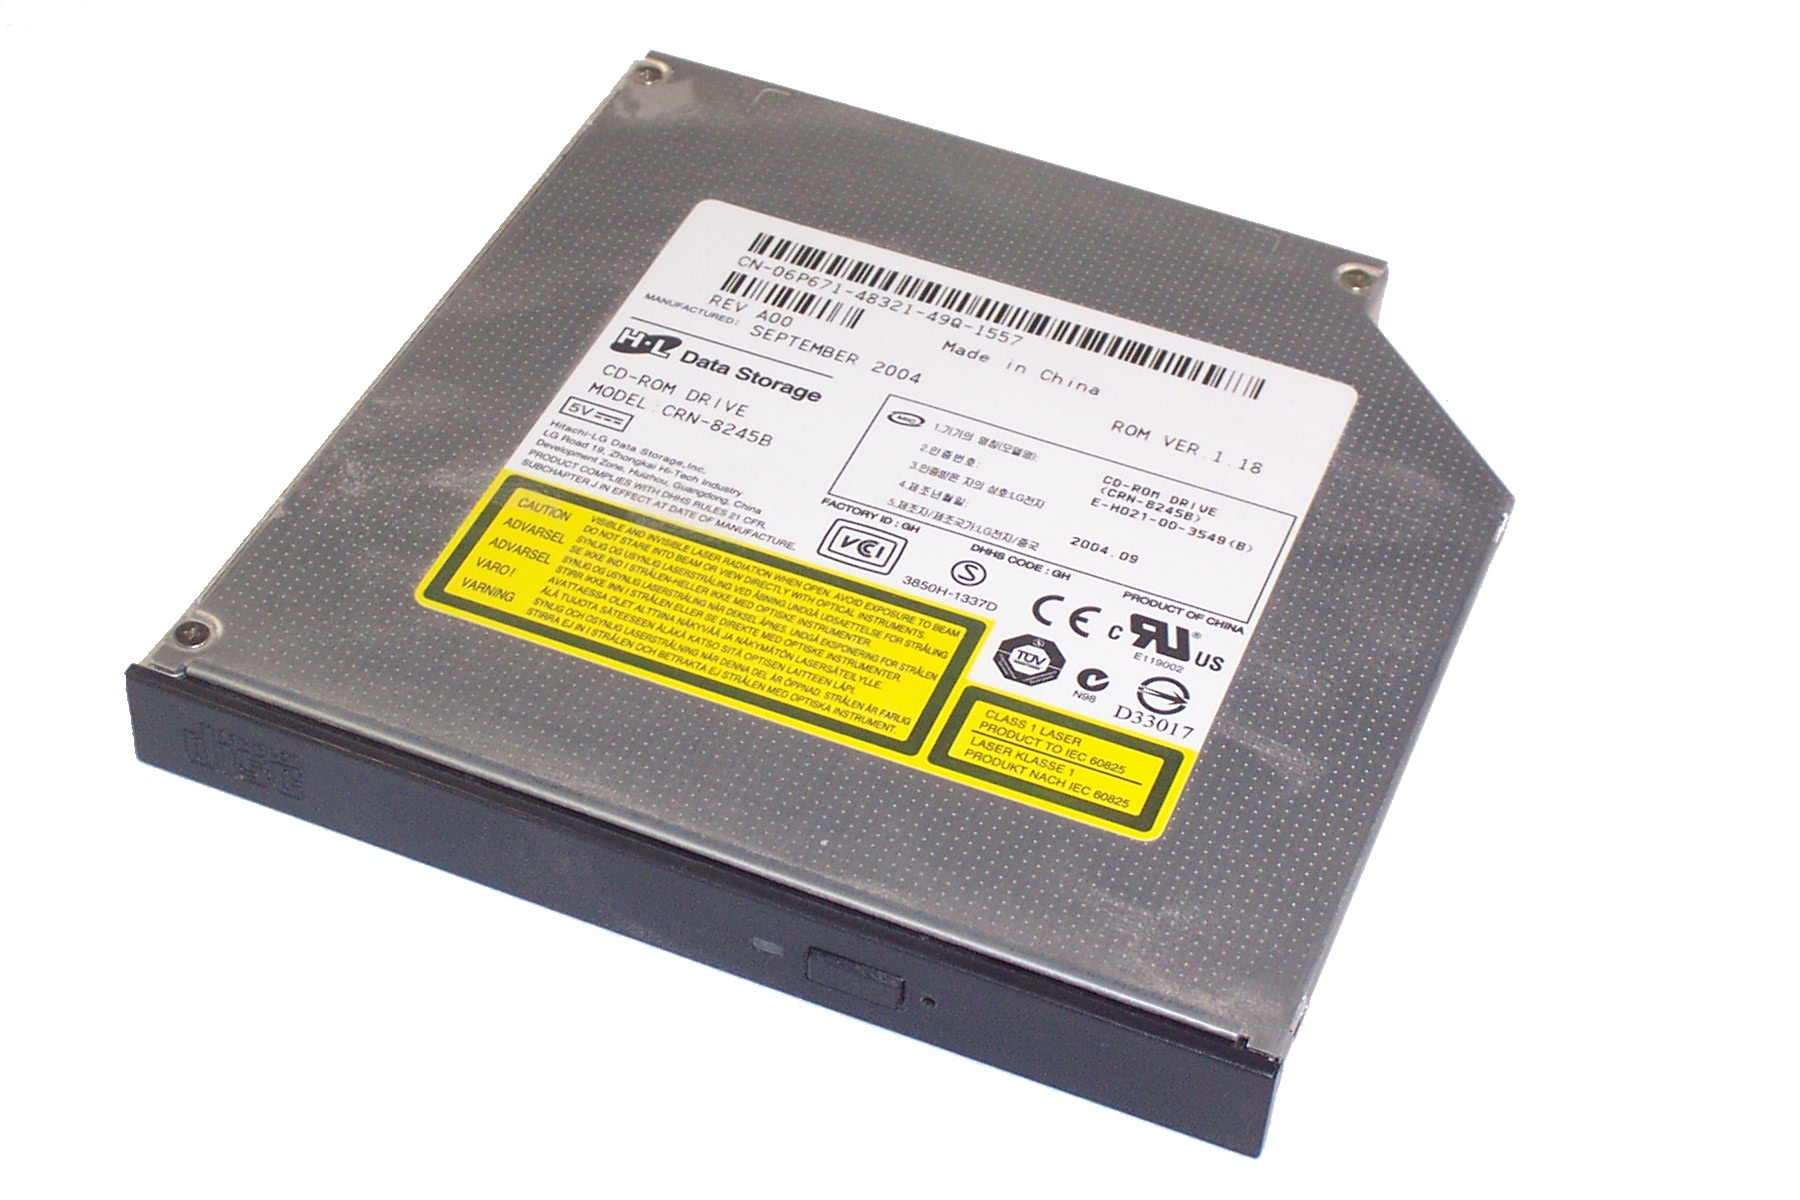 LG CD-ROM CRN-8245B DRIVERS FOR WINDOWS 7